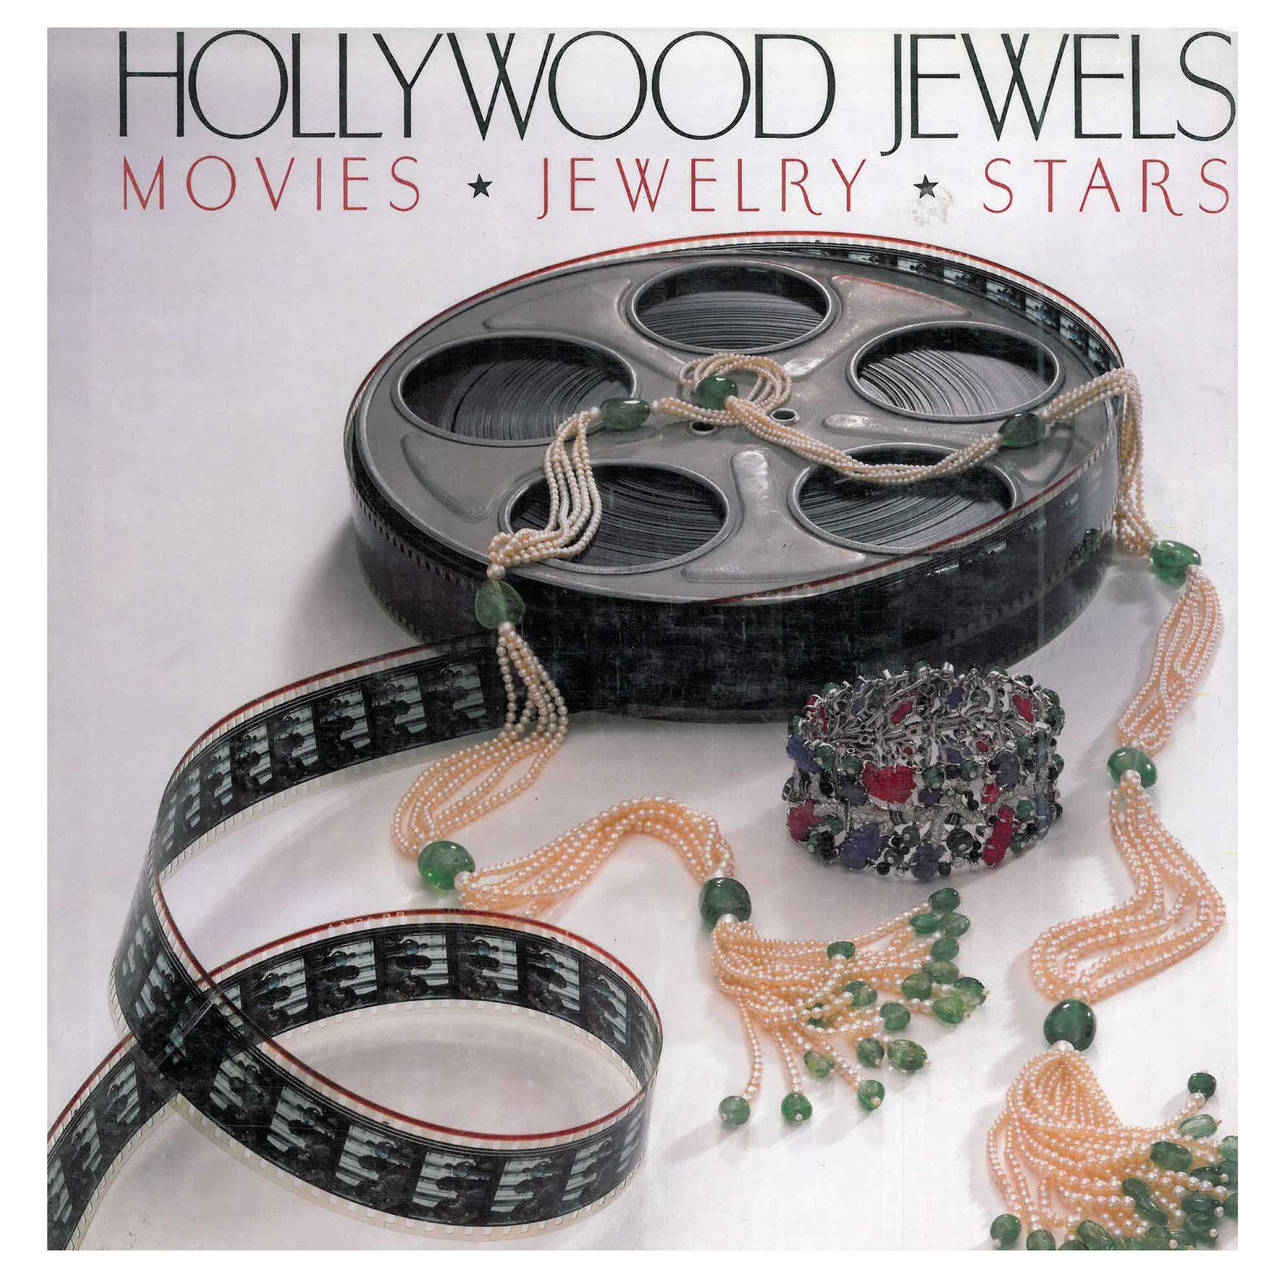 Book of HOLLYWOOD JEWELS - Movies, Jewelry, Stars For Sale